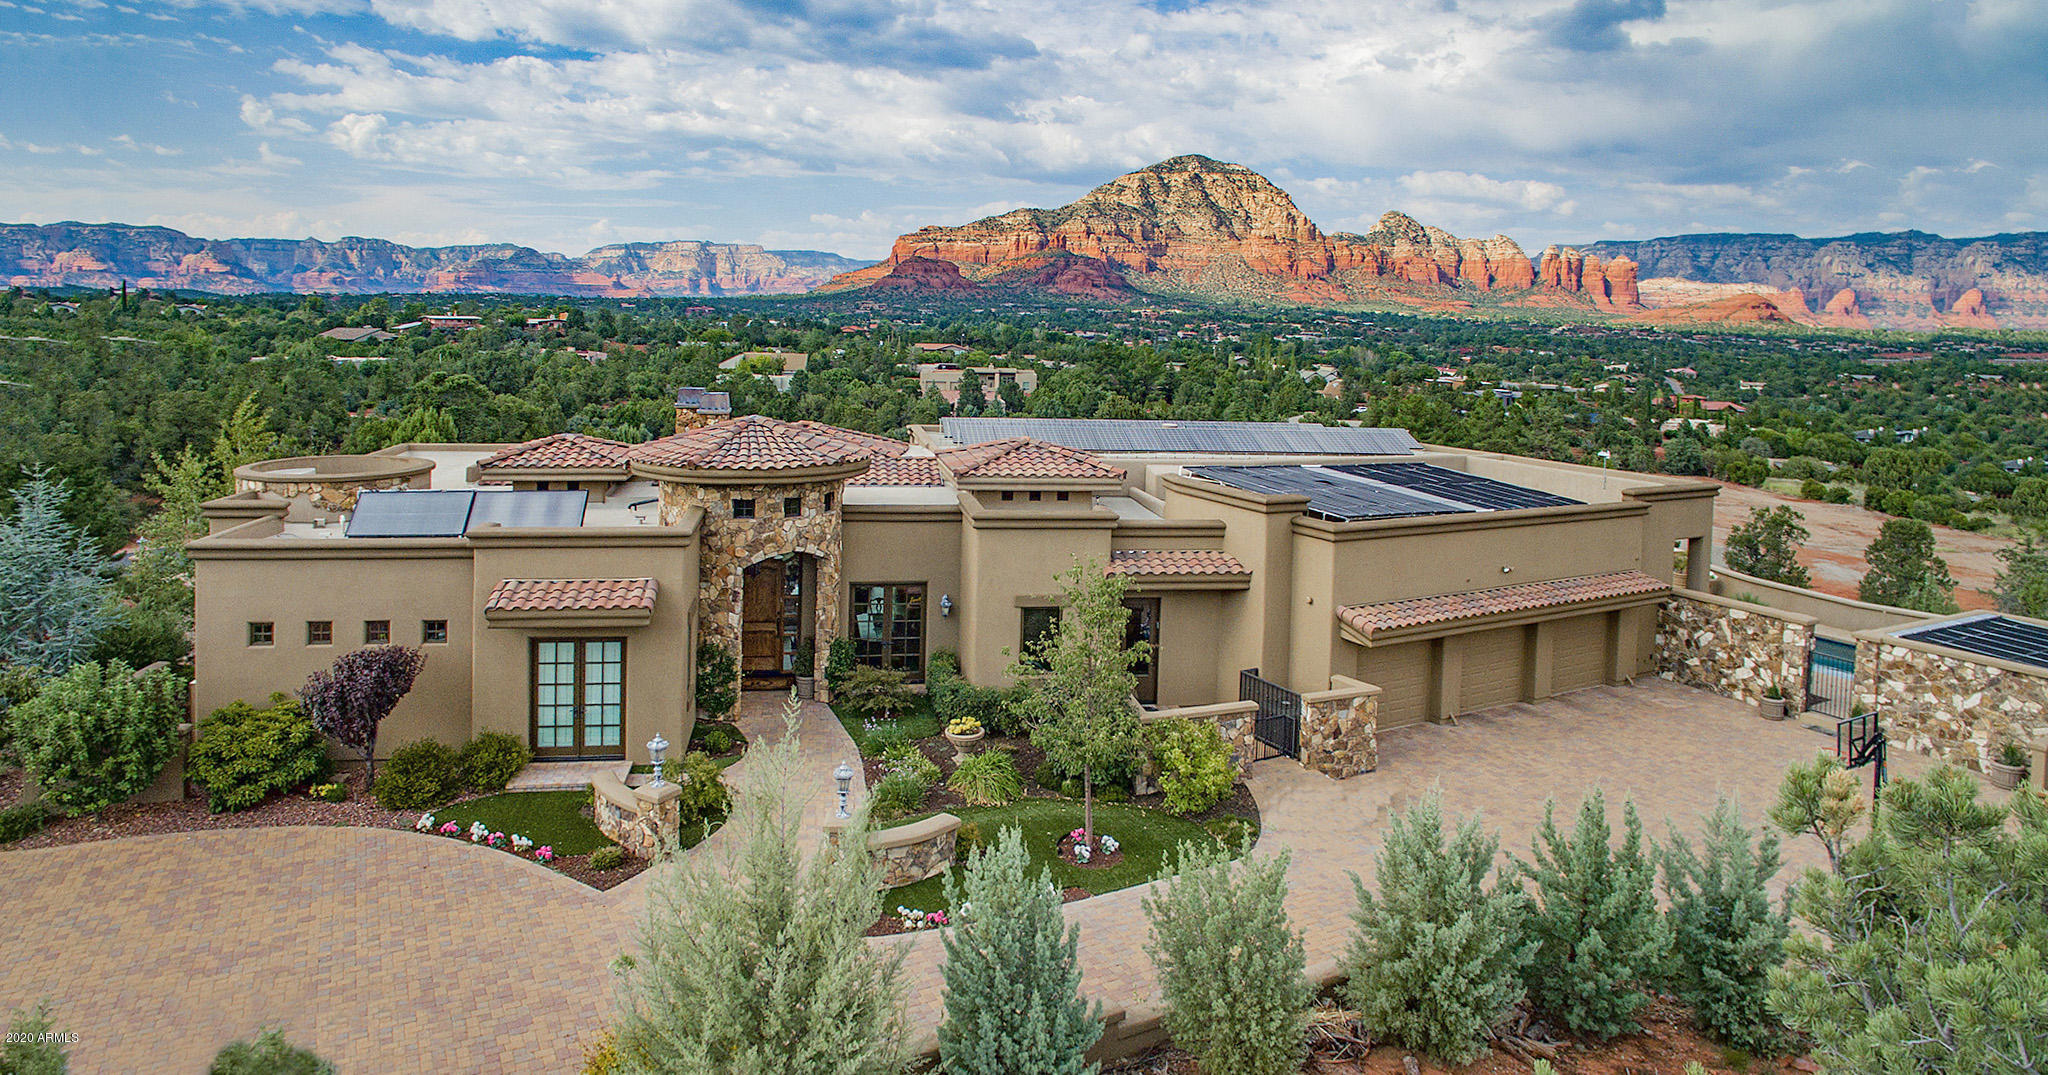 Photo of 140 CALLE DEL VIENTO --, Sedona, AZ 86336